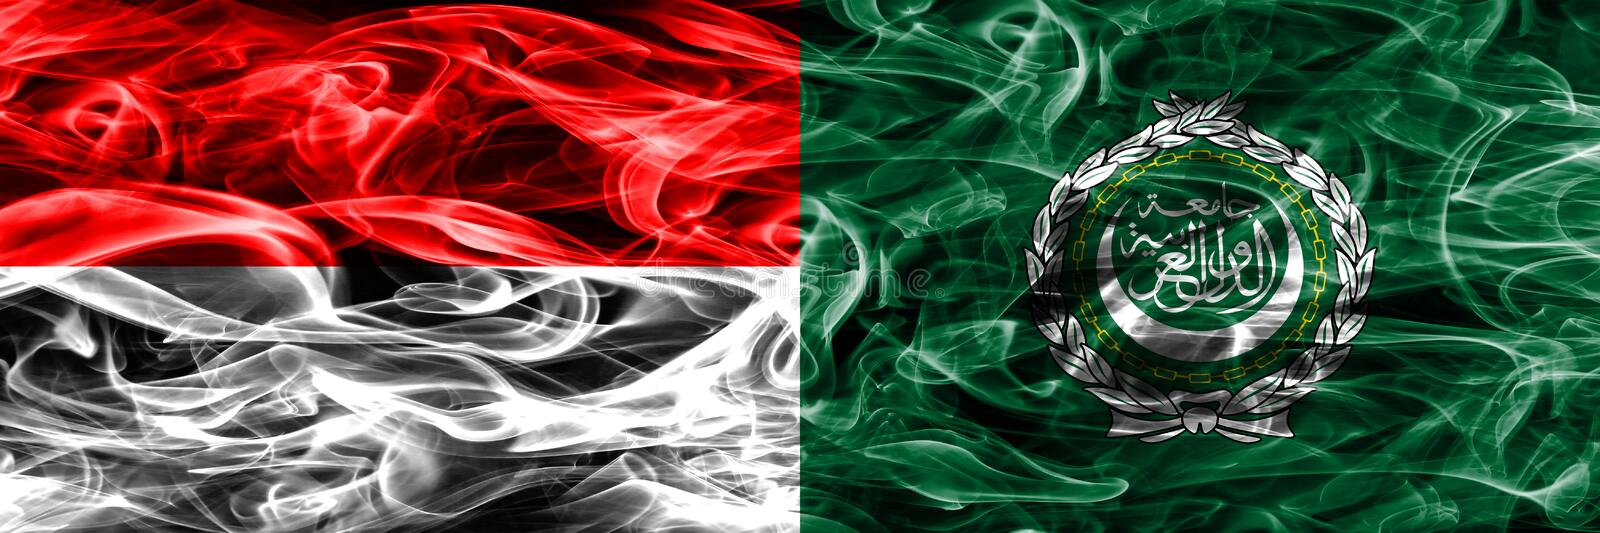 Indonesia vs Arab League smoke flags placed side by side. Thick stock photography